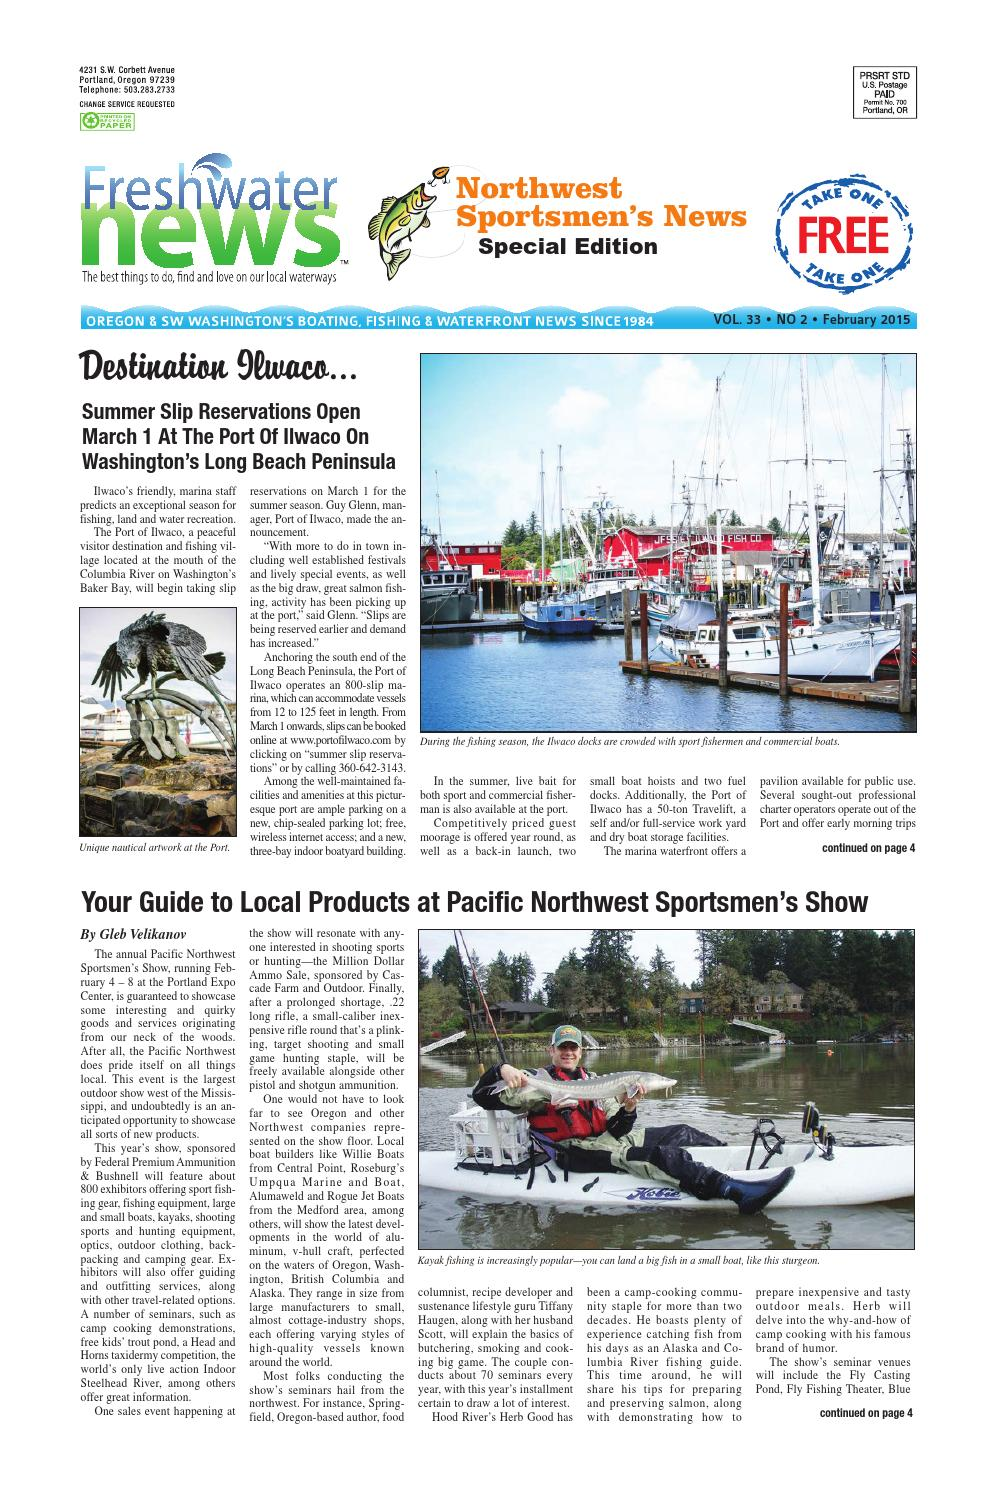 Freshwater News | February 2014 by Freshwater News - issuu